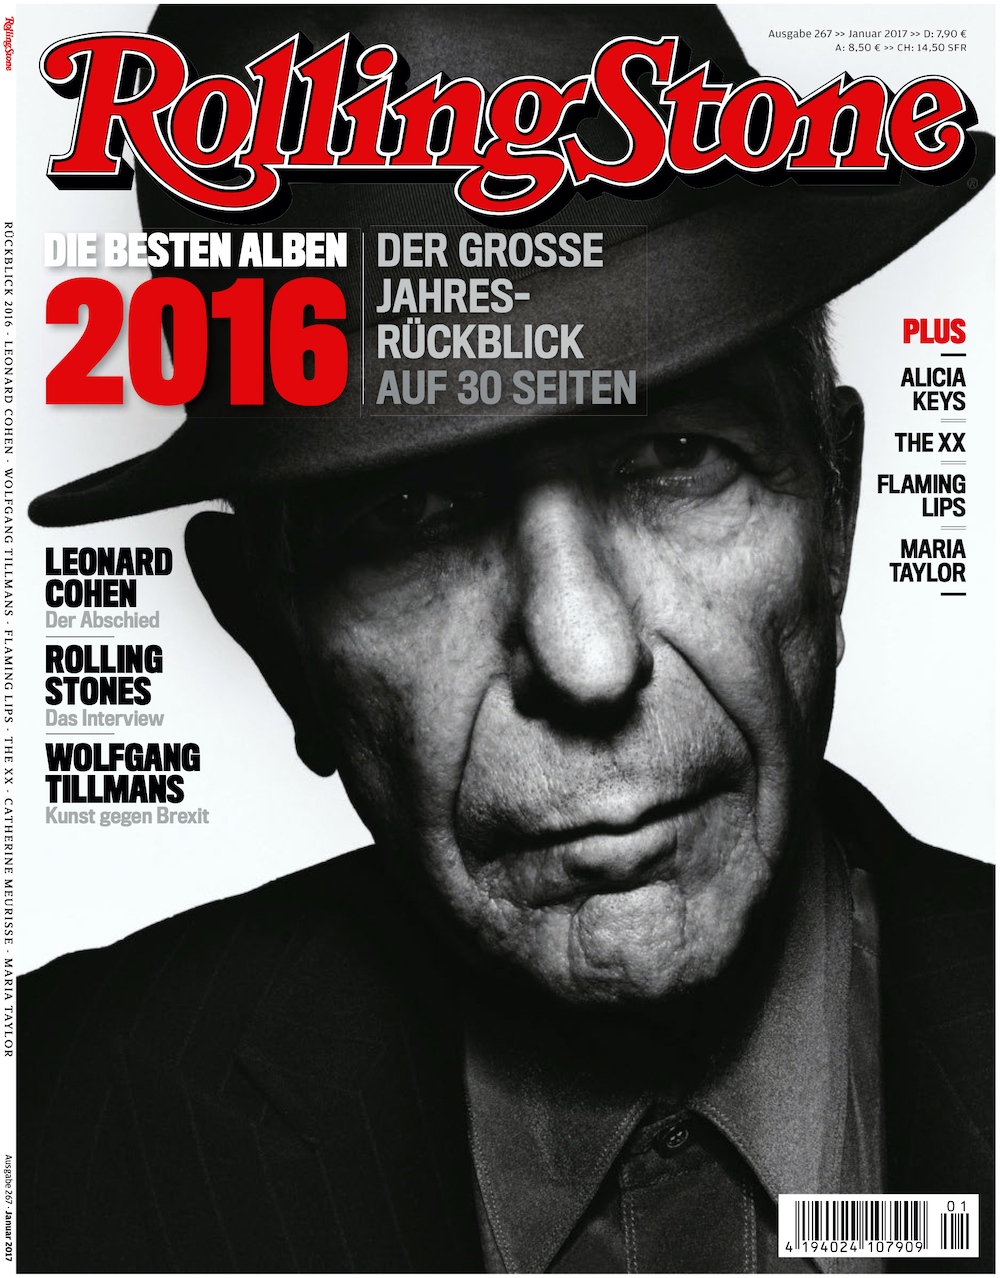 Rolling Stone 2017-01